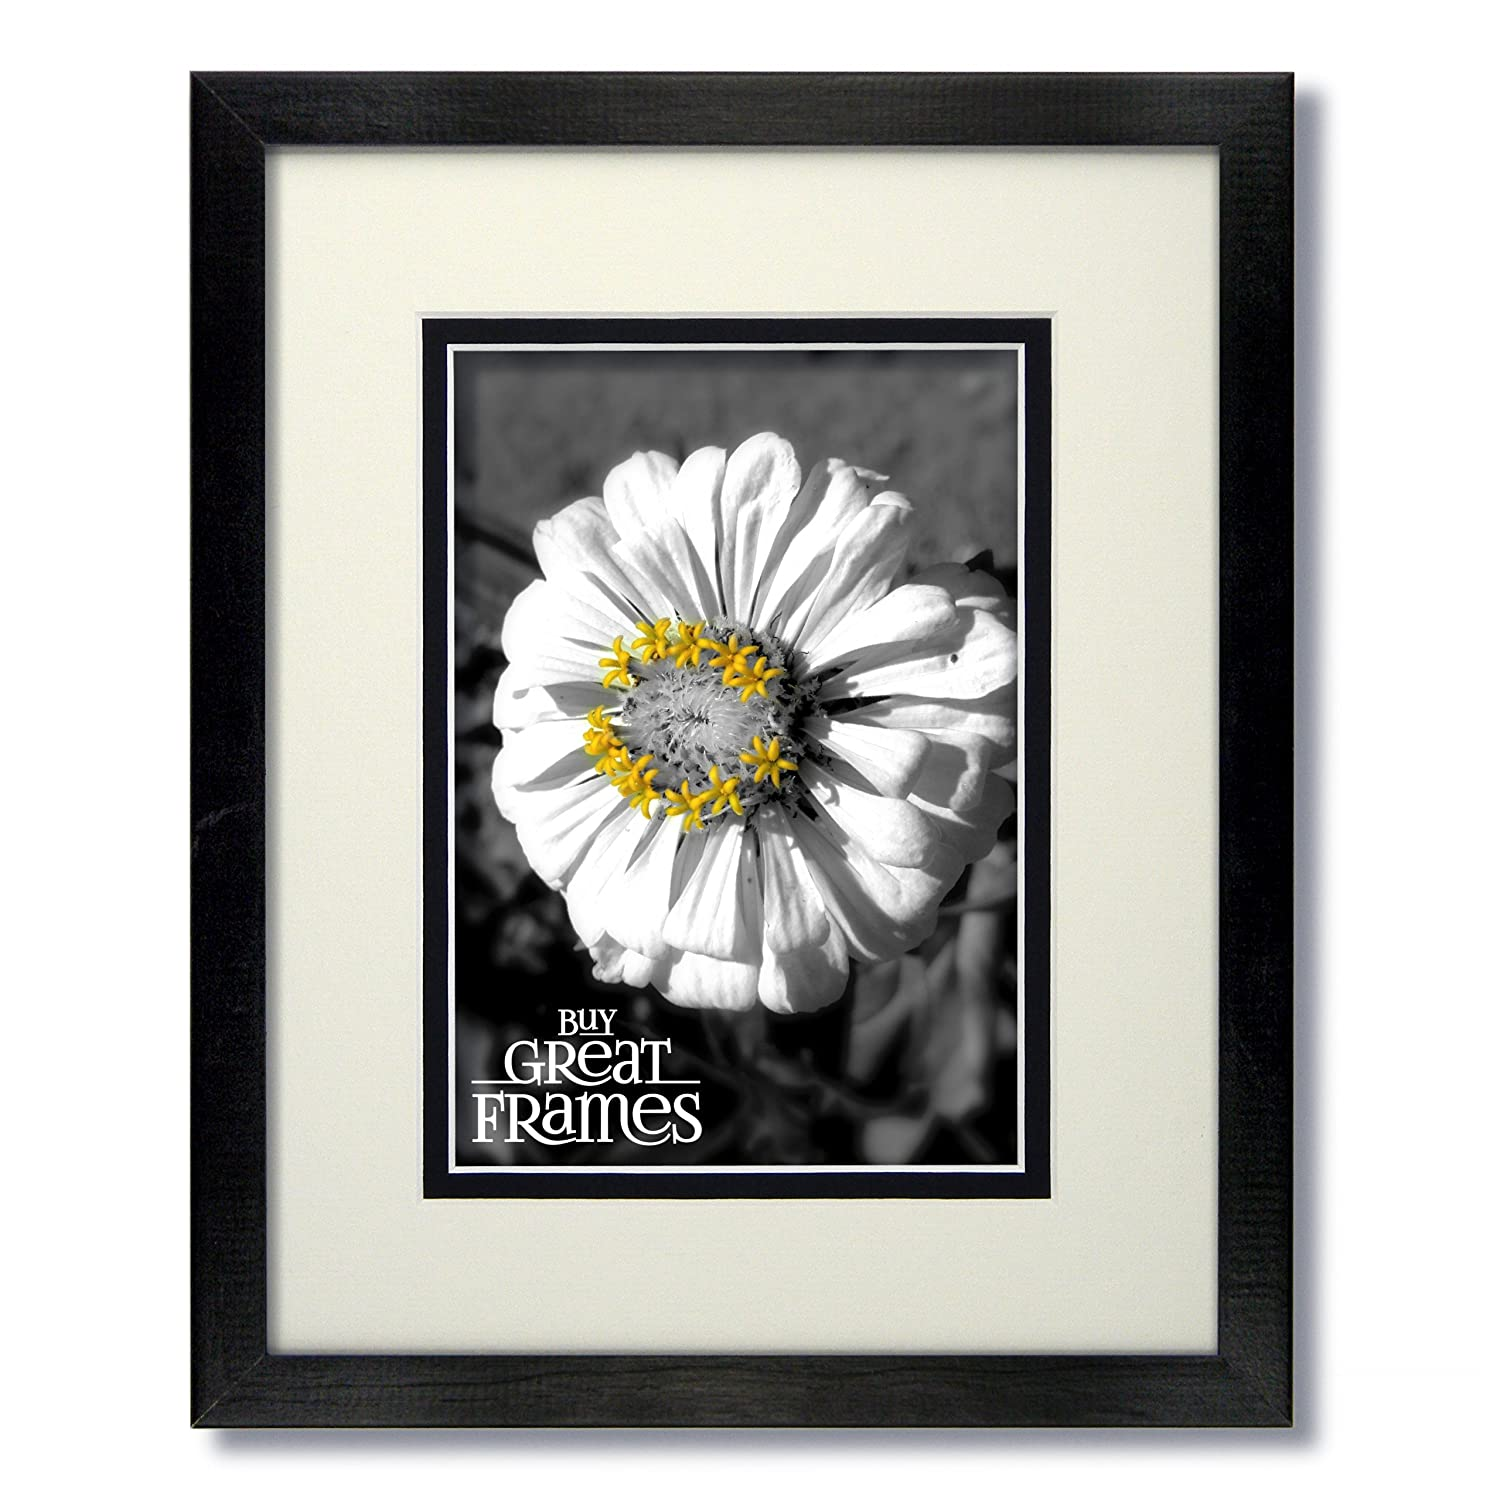 Amazon.com - One 16x20 Black Wood Frame and Glass with Warm White ...